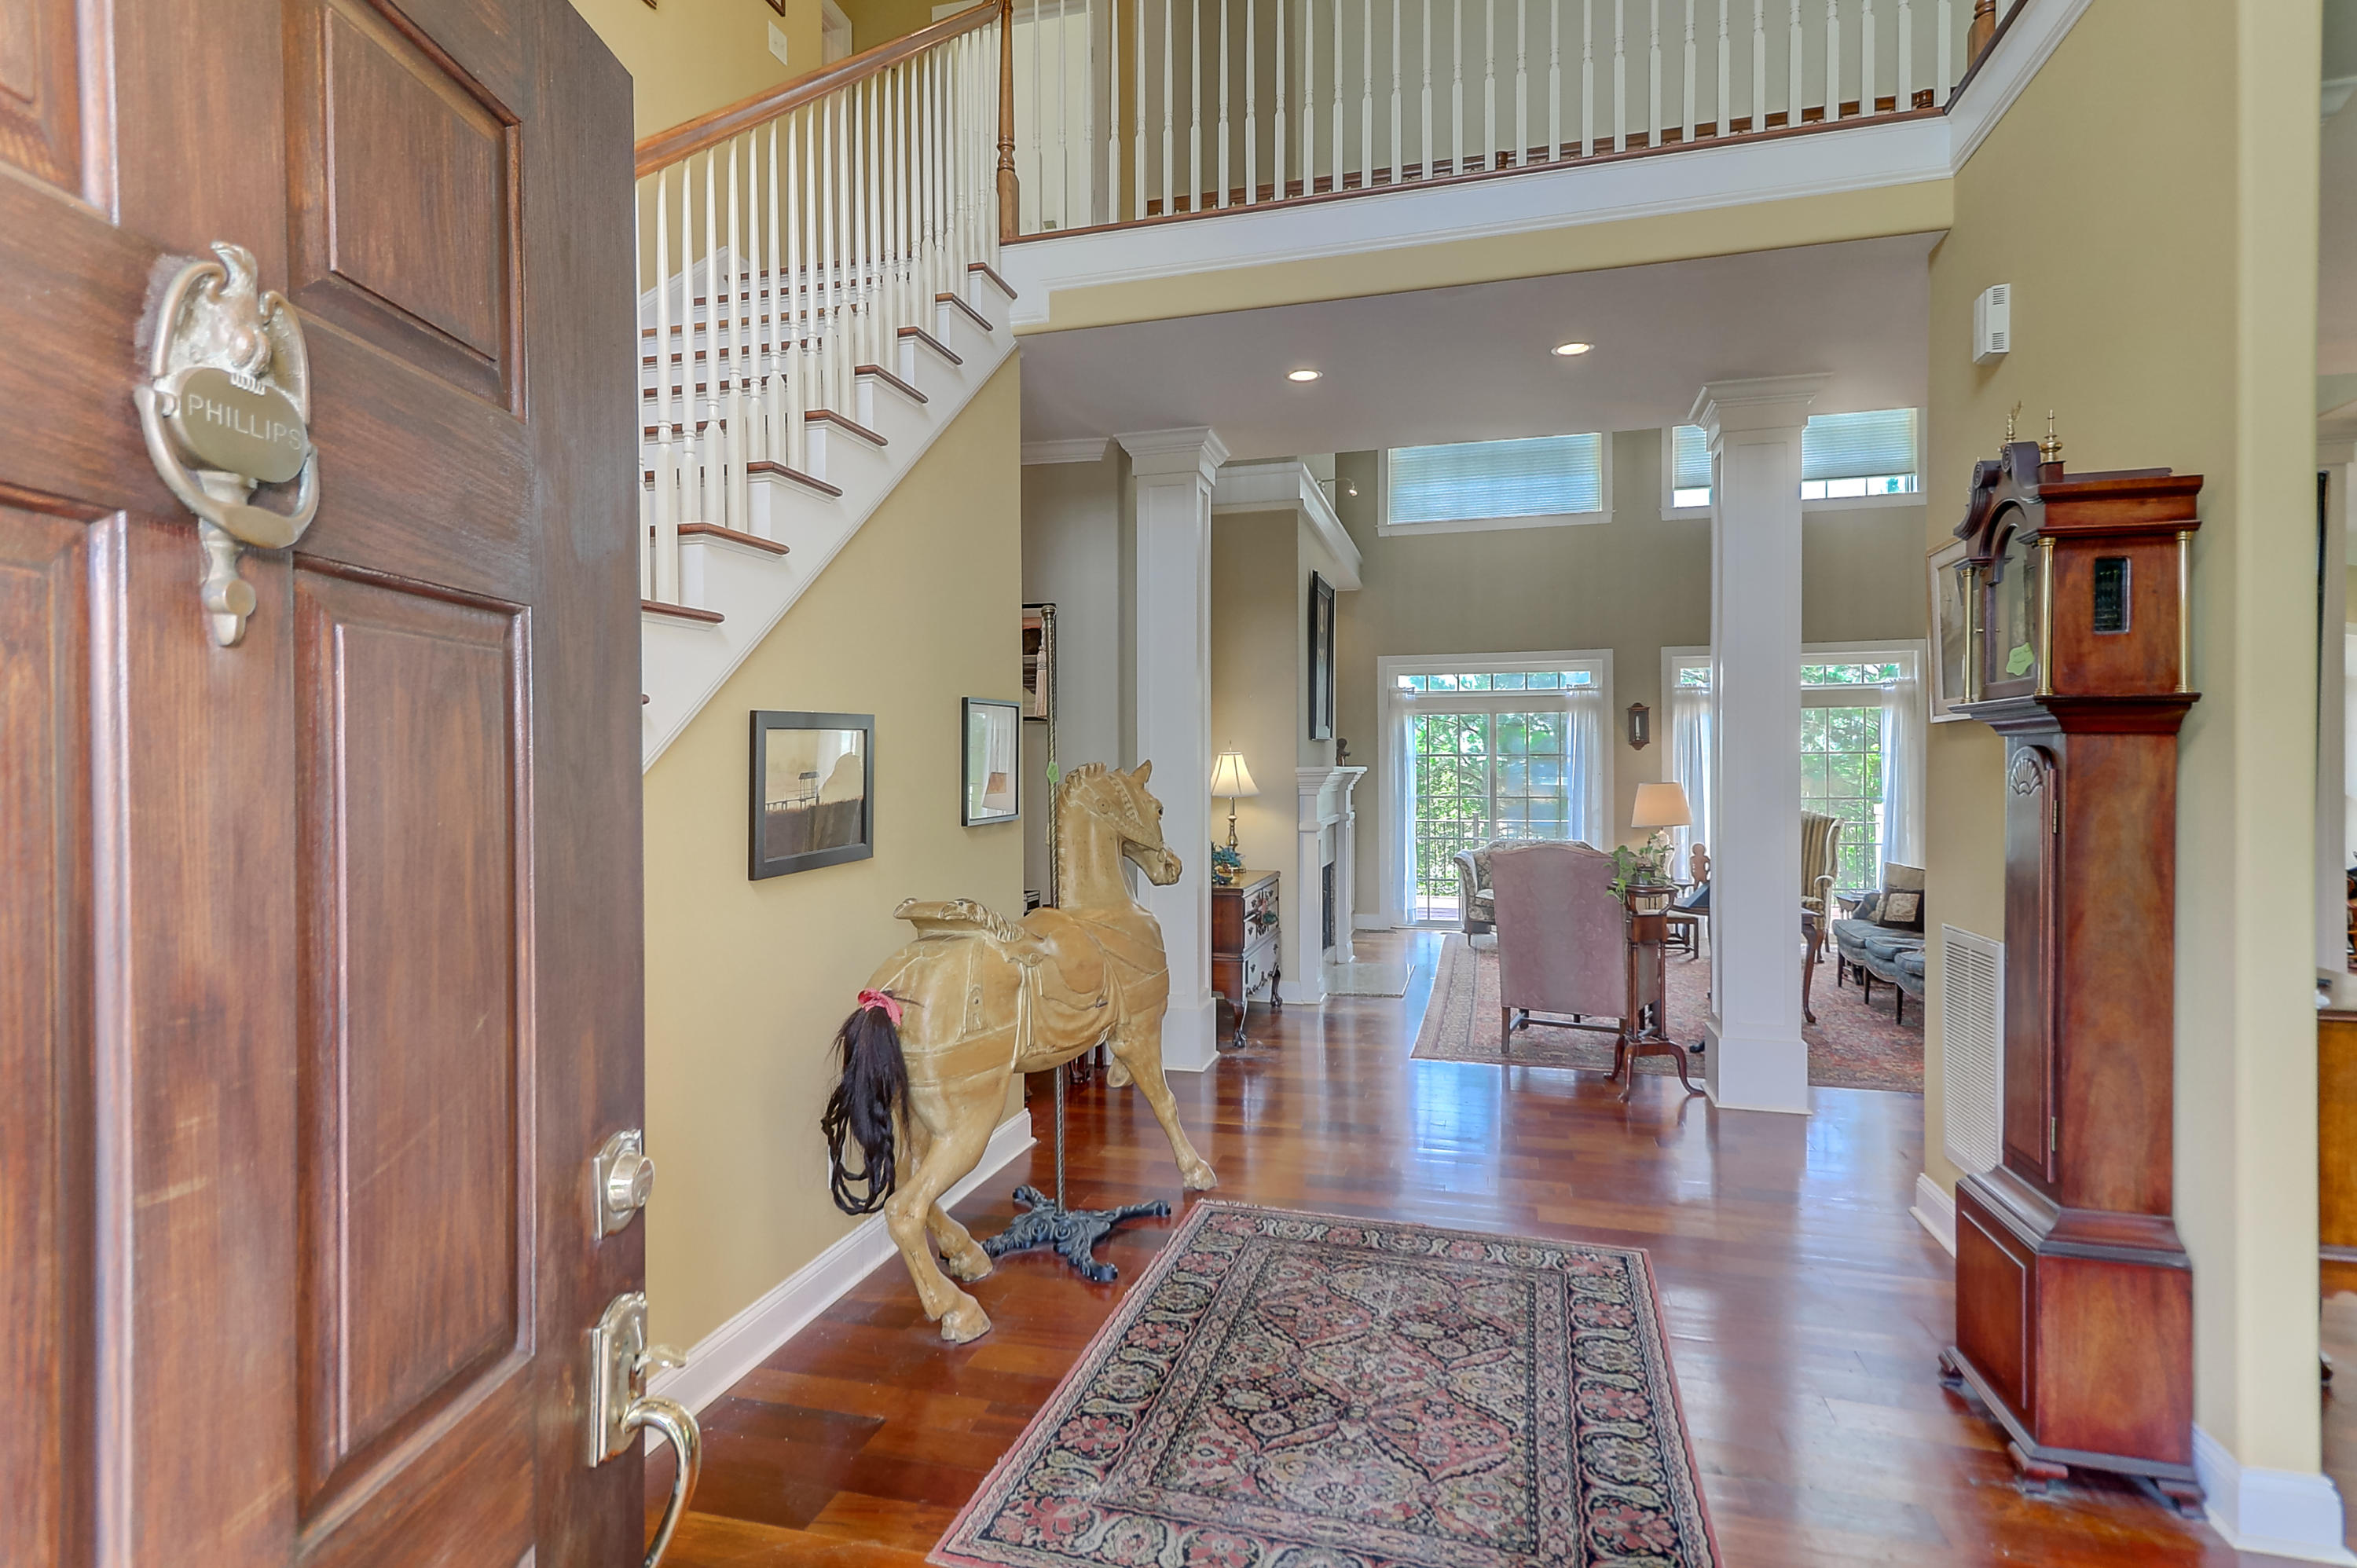 Beresford Creek Landing Homes For Sale - 1101 Beresford Run, Charleston, SC - 27